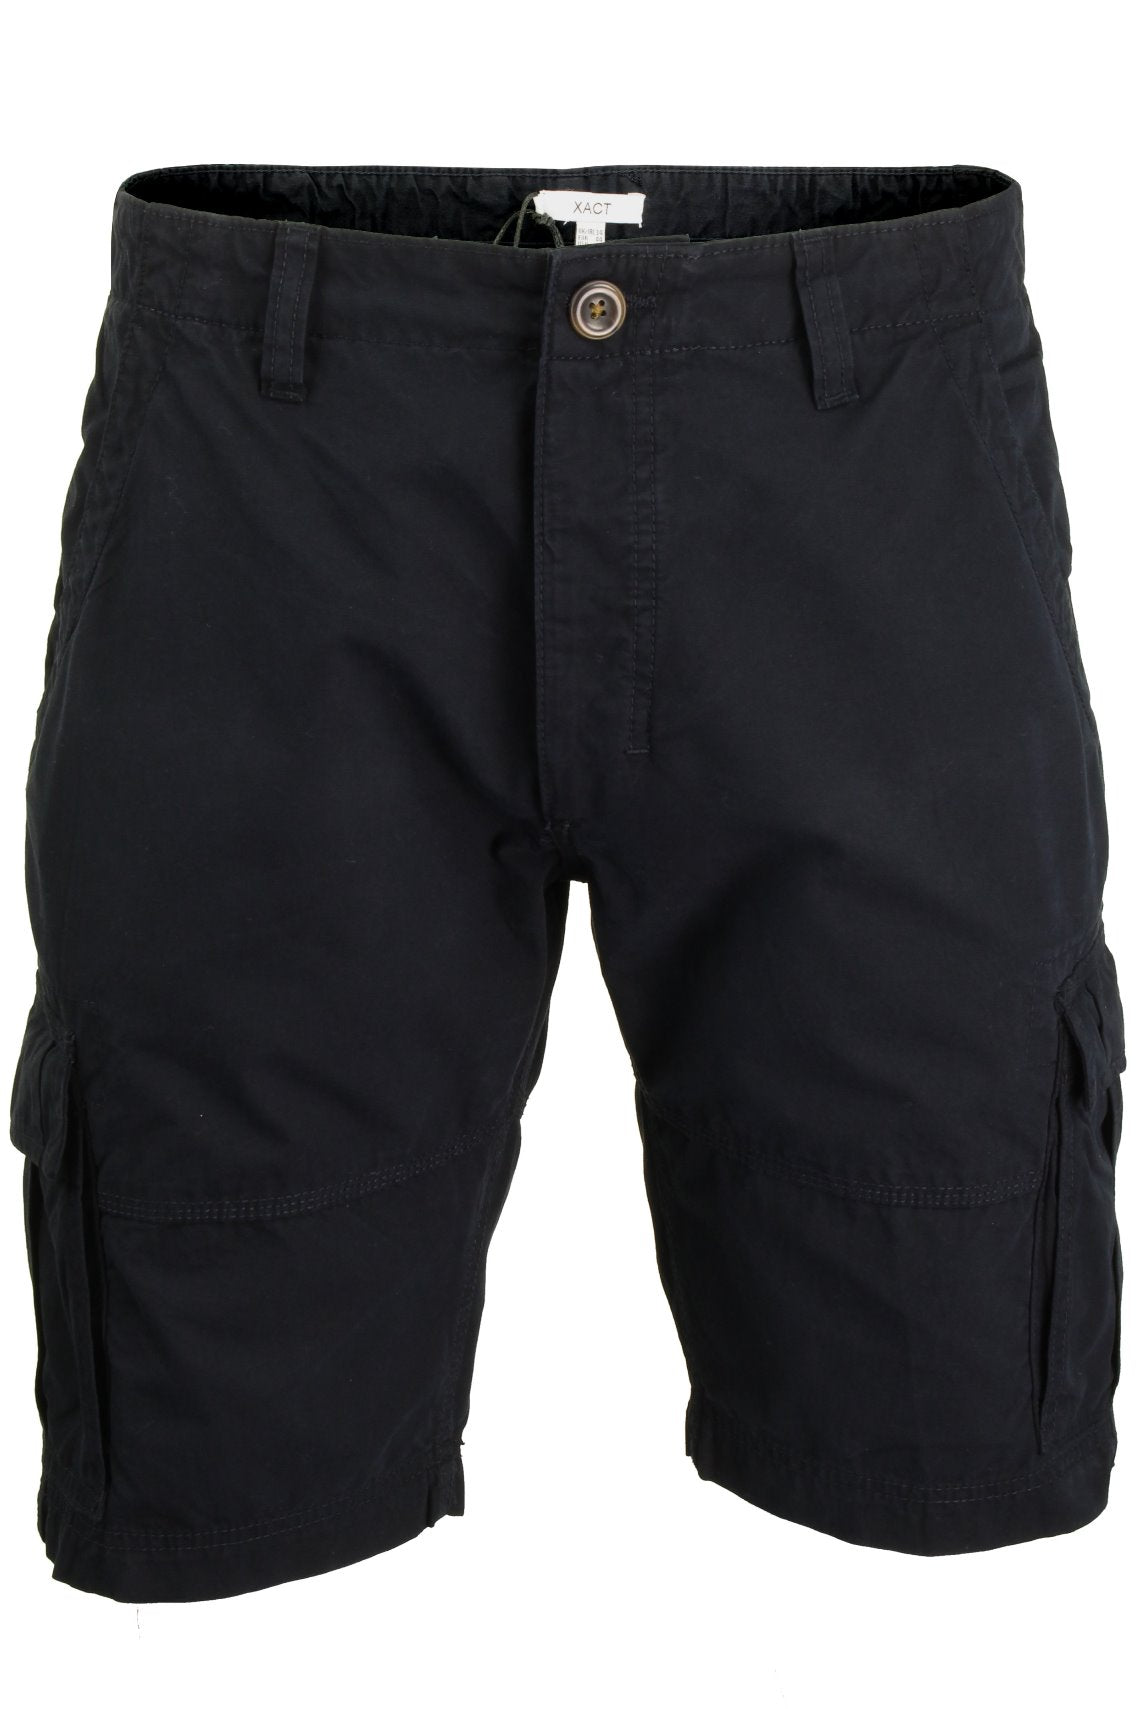 Mens Canvas Cargo Shorts by Xact-Main Image